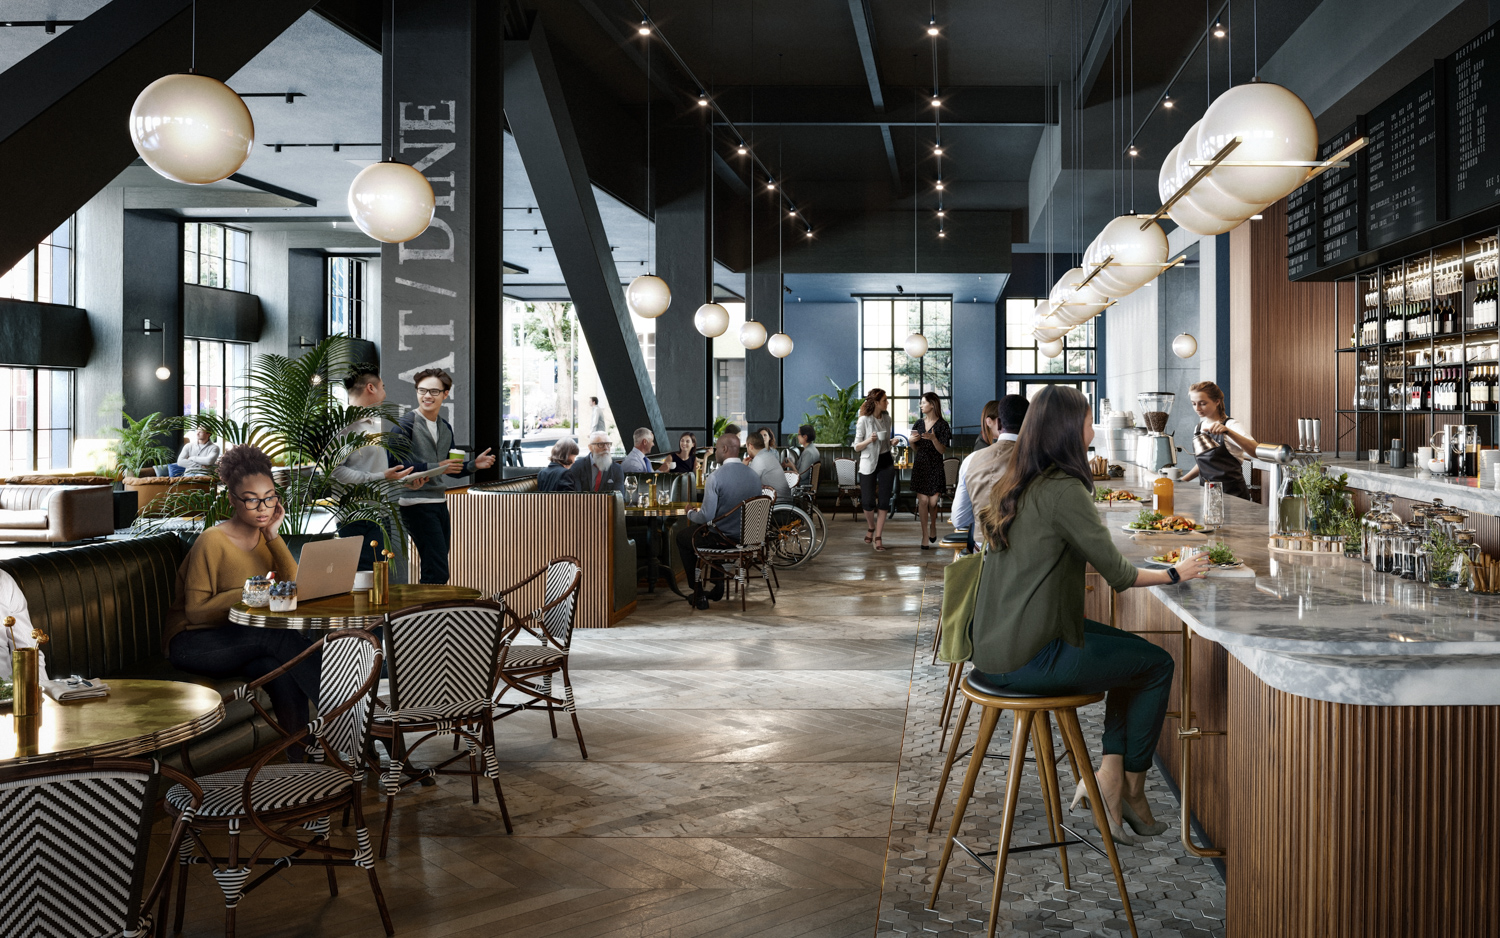 5M 415 Natoma Lobby Restaurant, rendering by Brookfield Properties and Steelblue